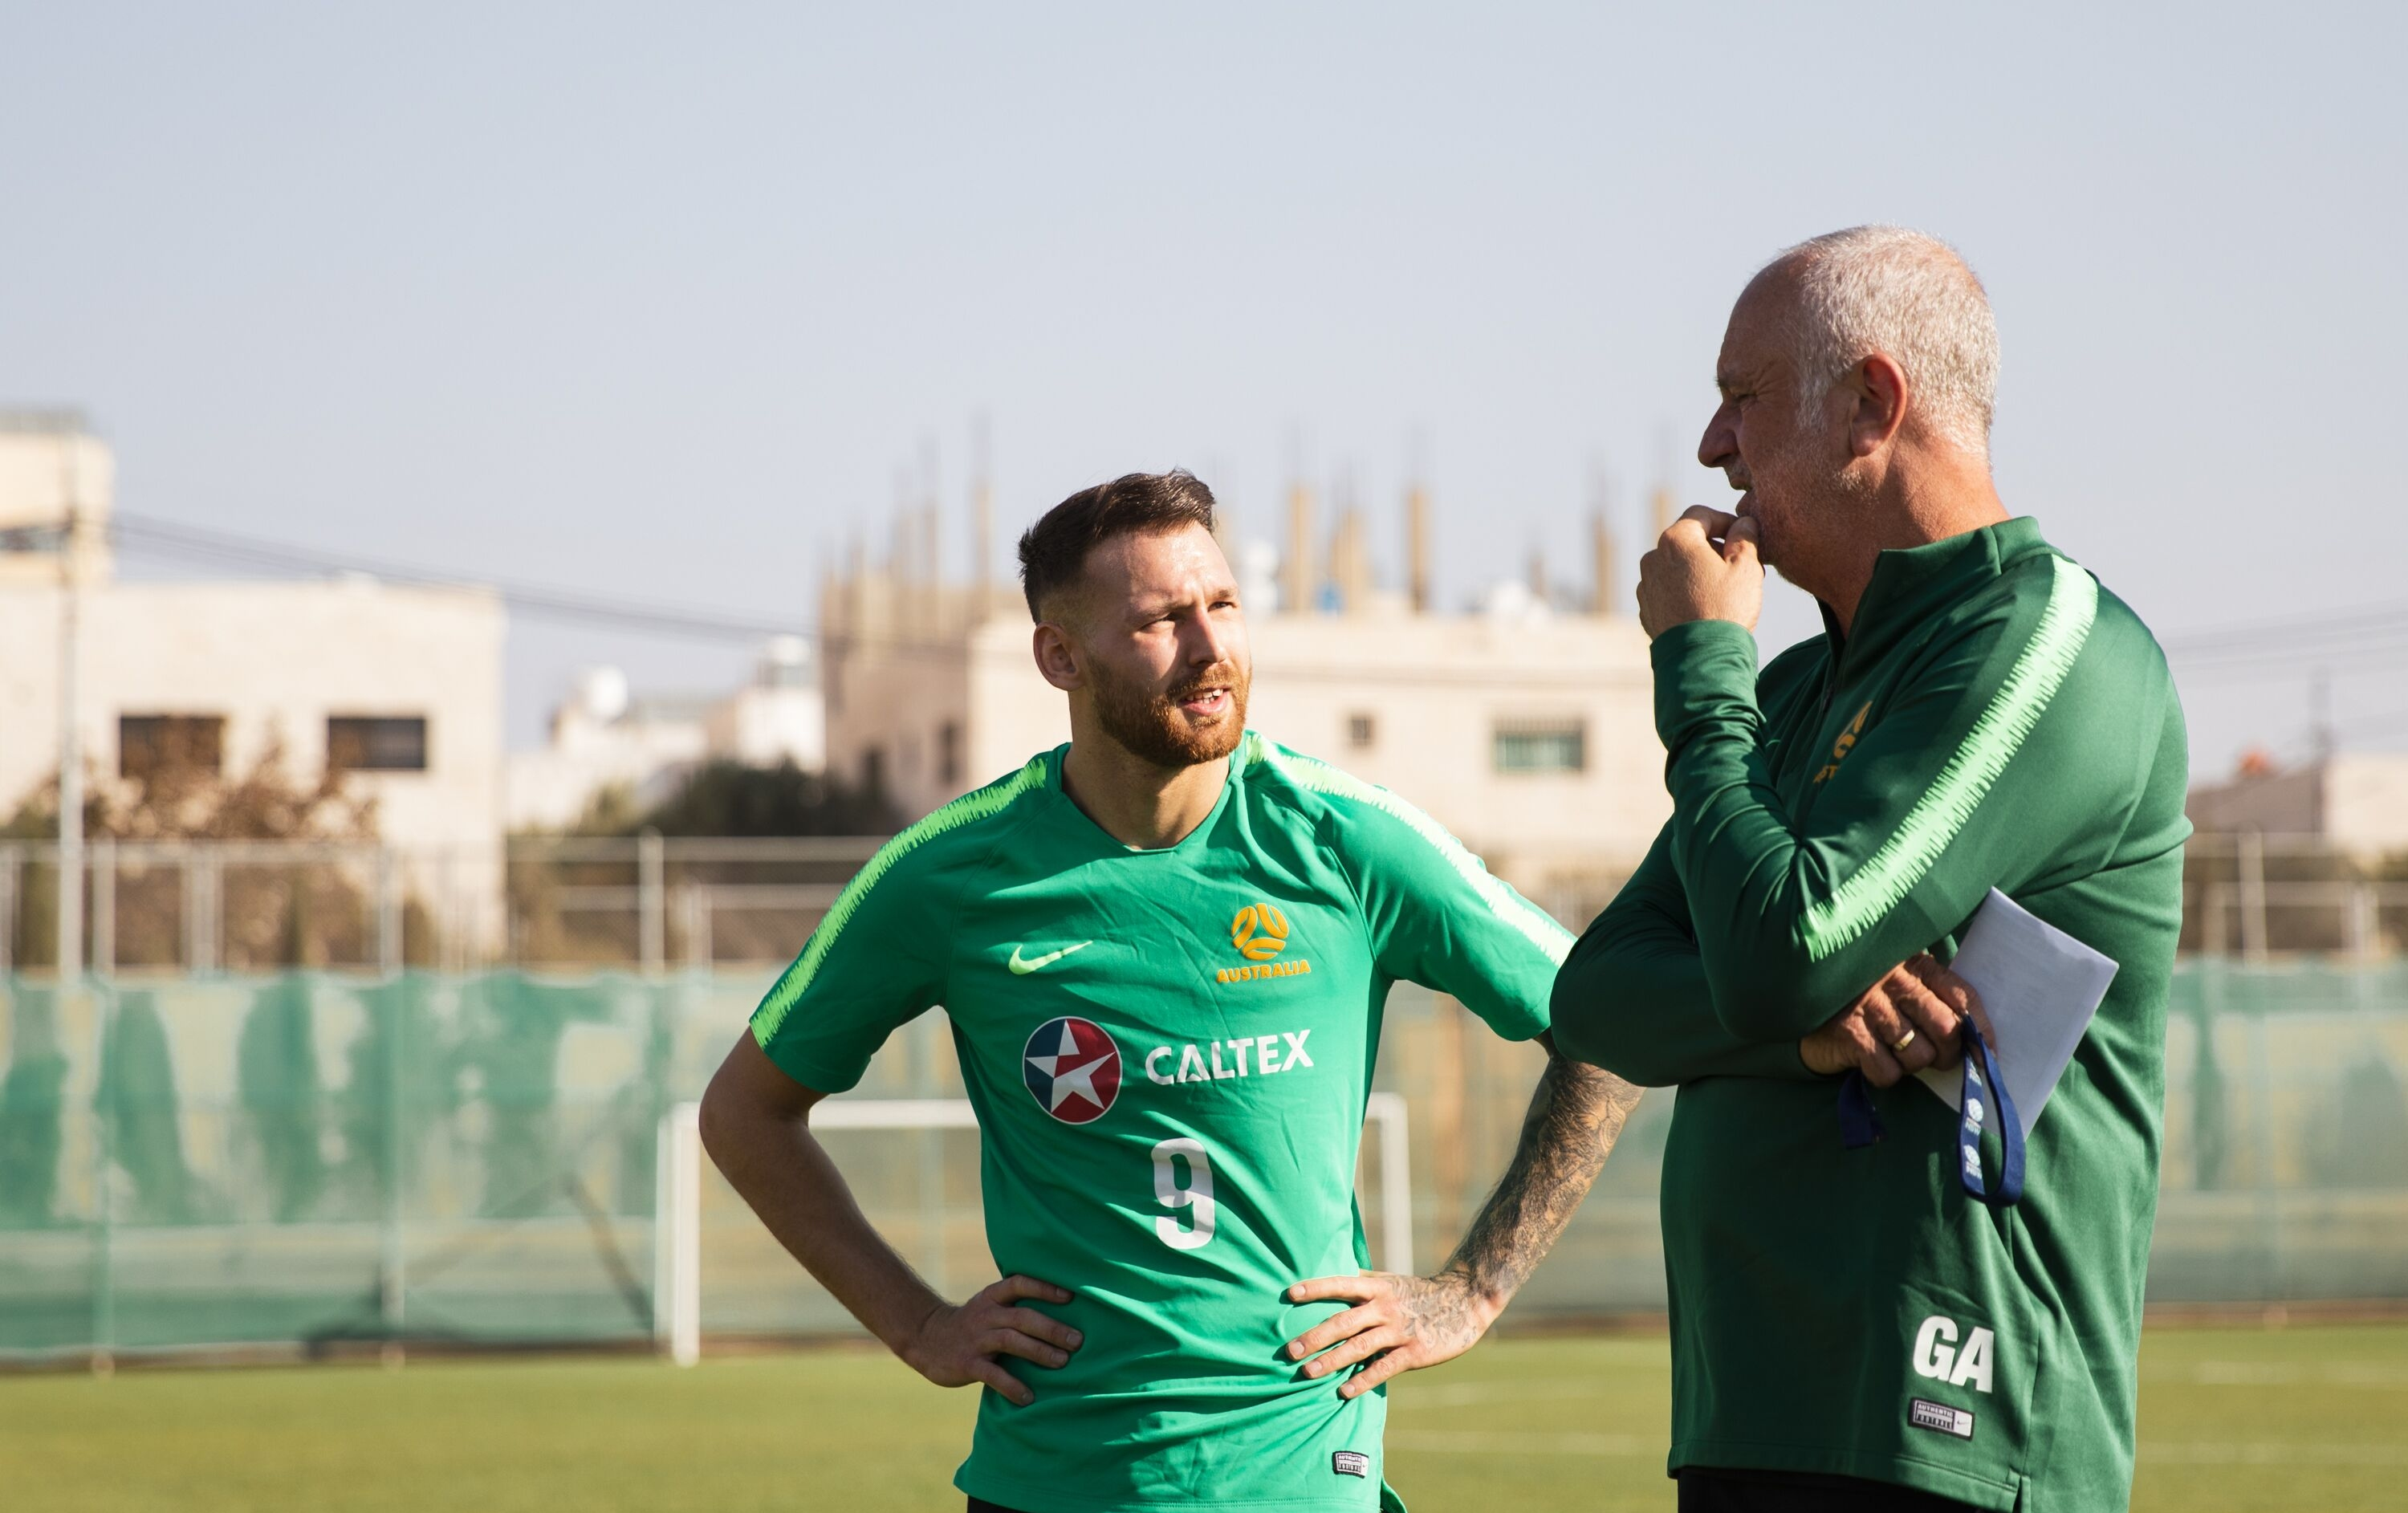 Boyle itching to show Socceroos fans 'what I can really do'